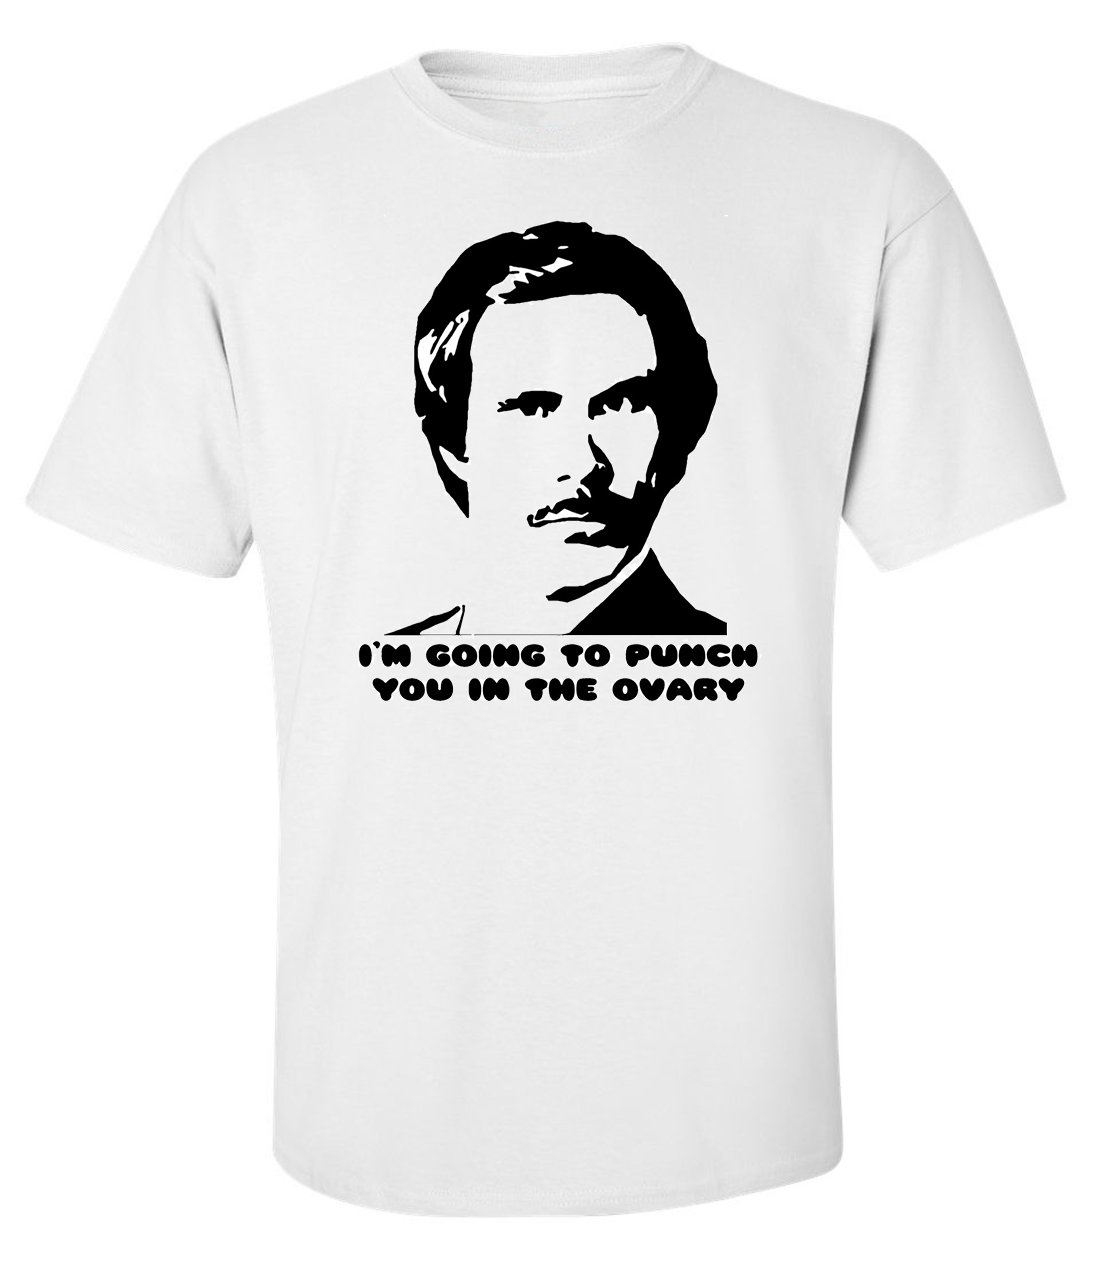 Anchorman stencil funny portrait slogan men printed white t-shirt size 2XL